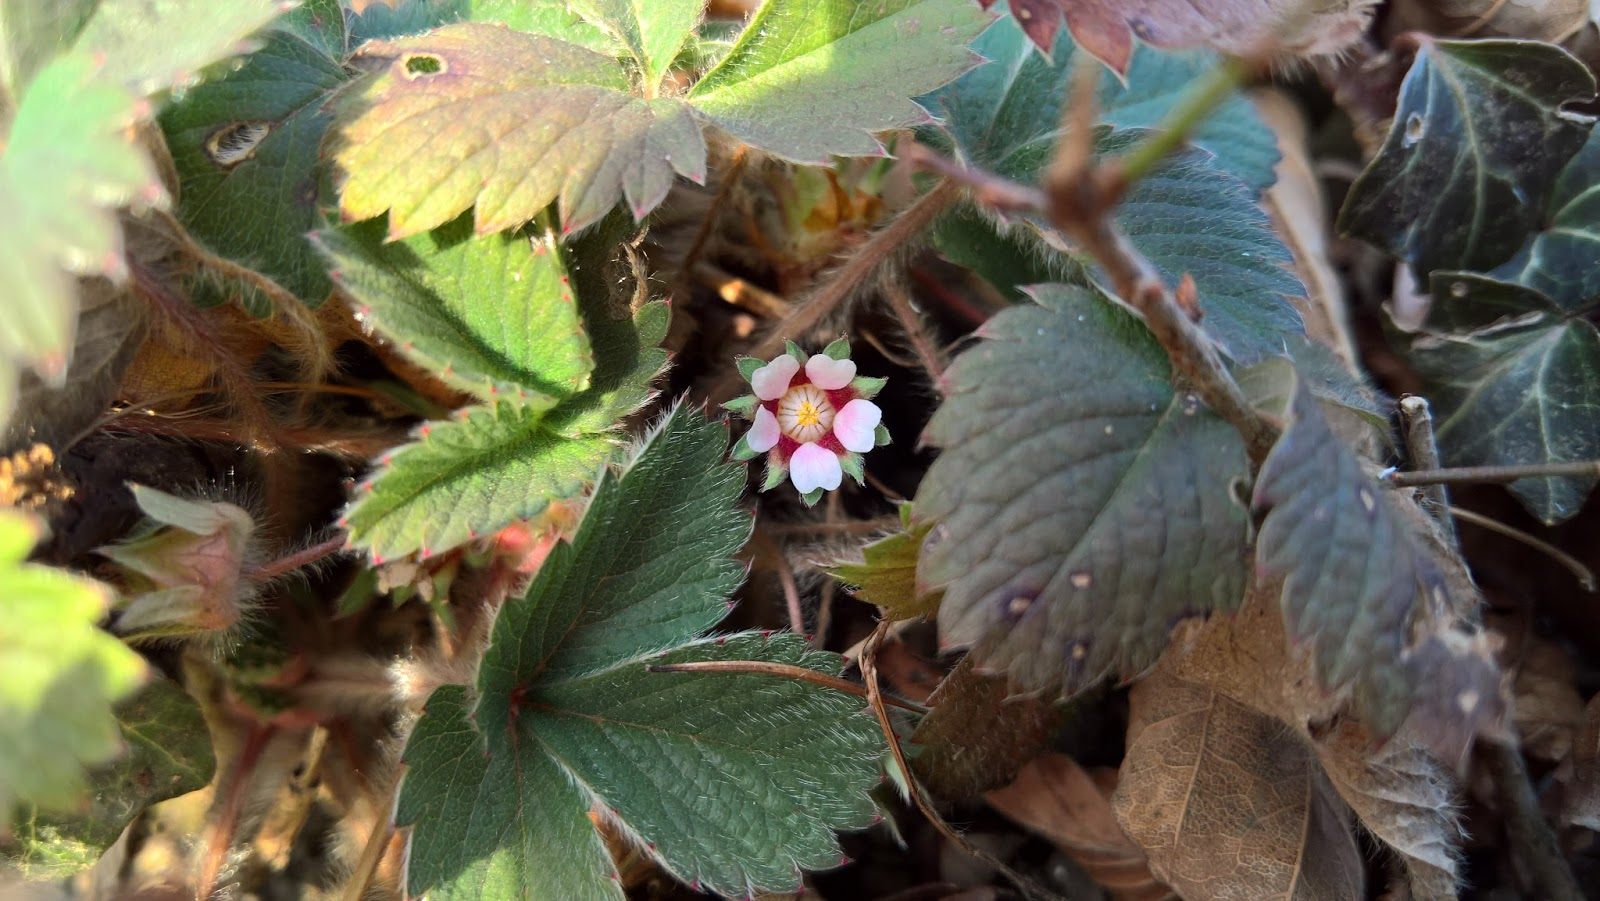 Fragaria vesca [Rosaceae] - Wild Strawberry